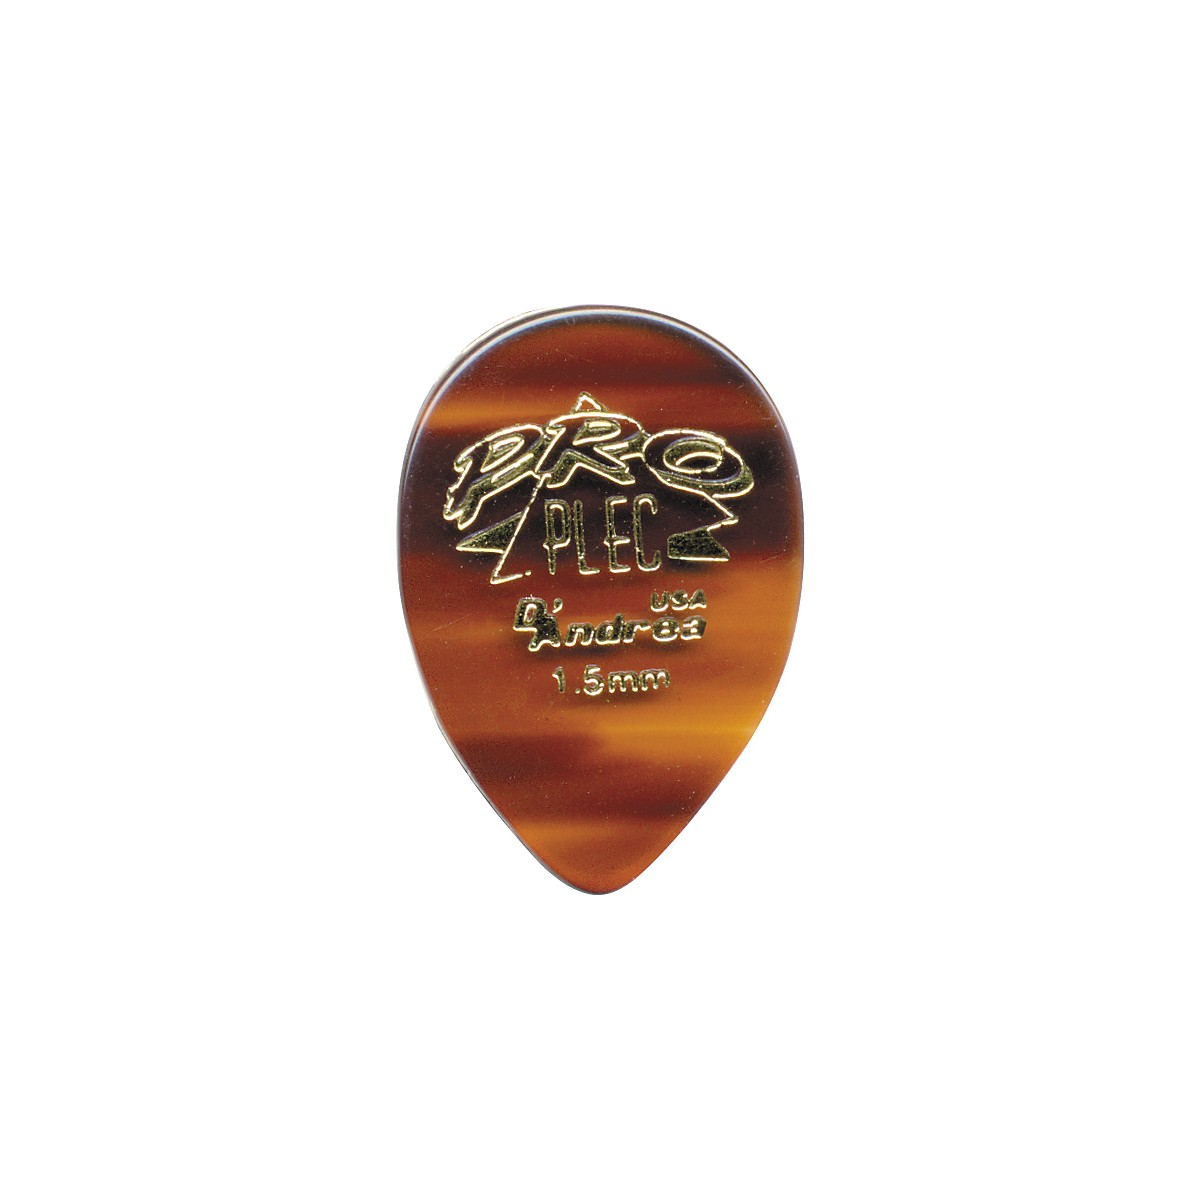 D'Andrea Pro Plec Guitar Picks Small Pointed Teardrop - One Dozen